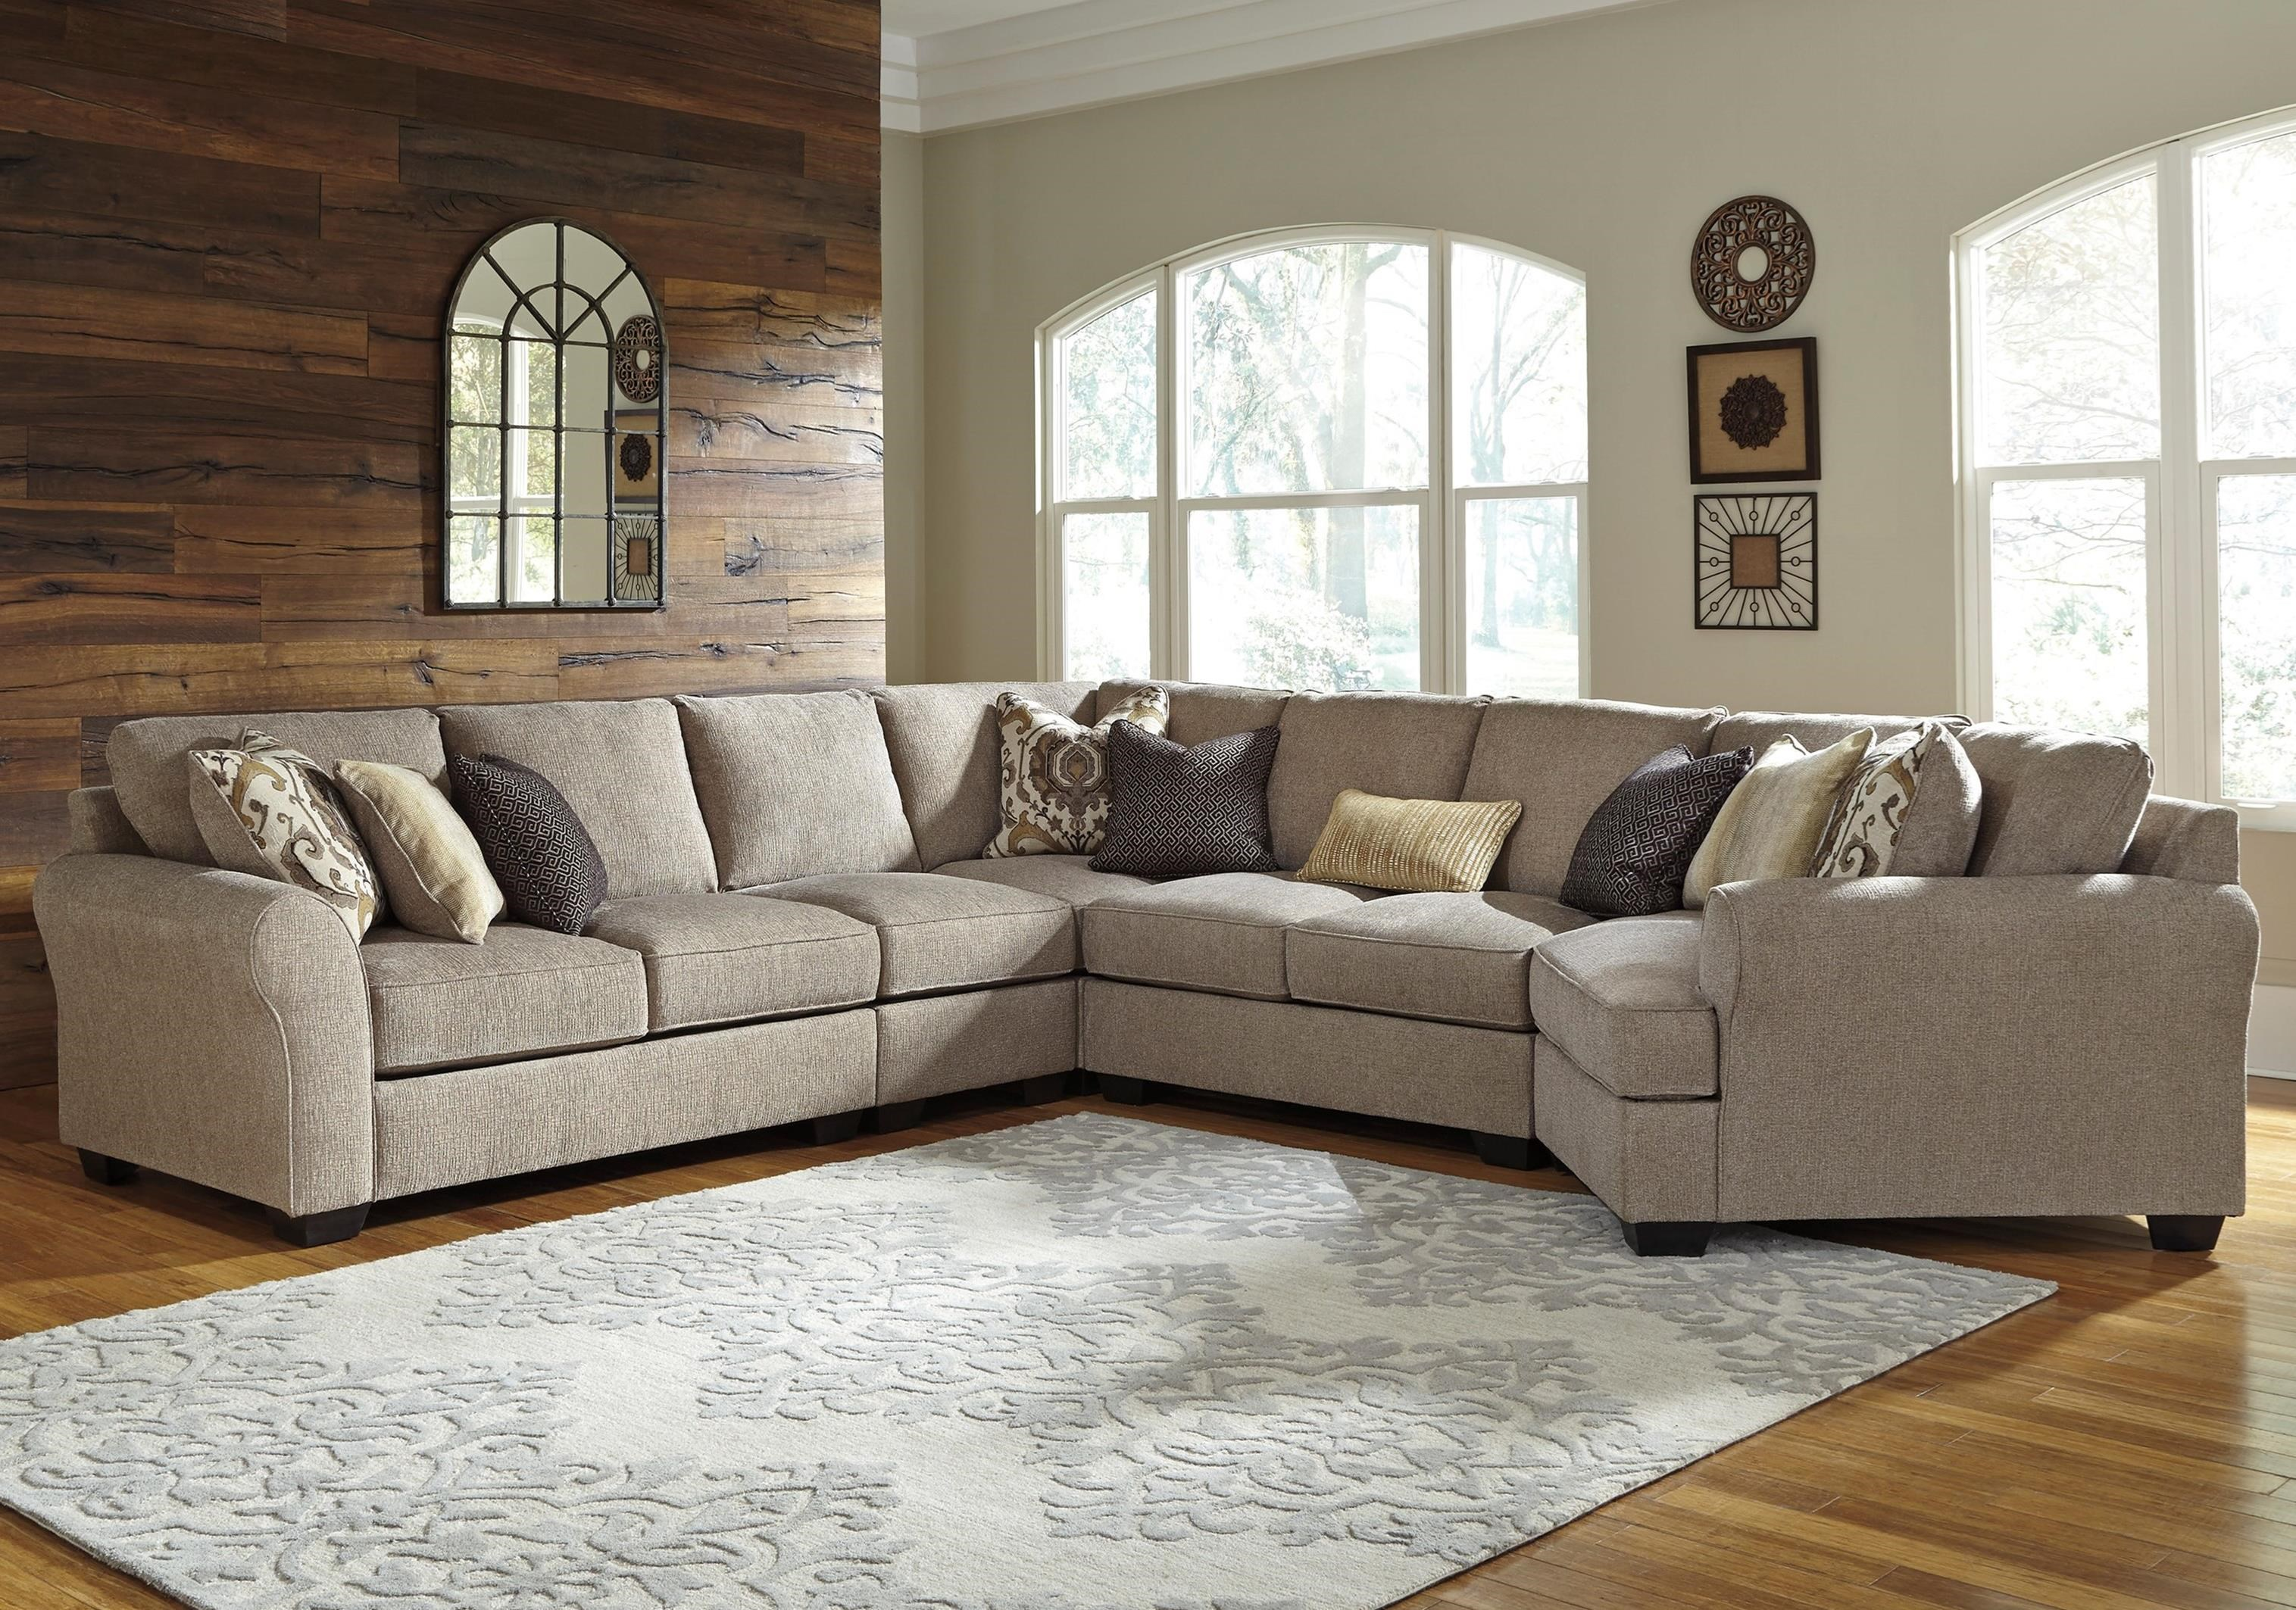 Pantomine 5-Piece Sectional with Right Cuddler by Benchcraft at Northeast Factory Direct